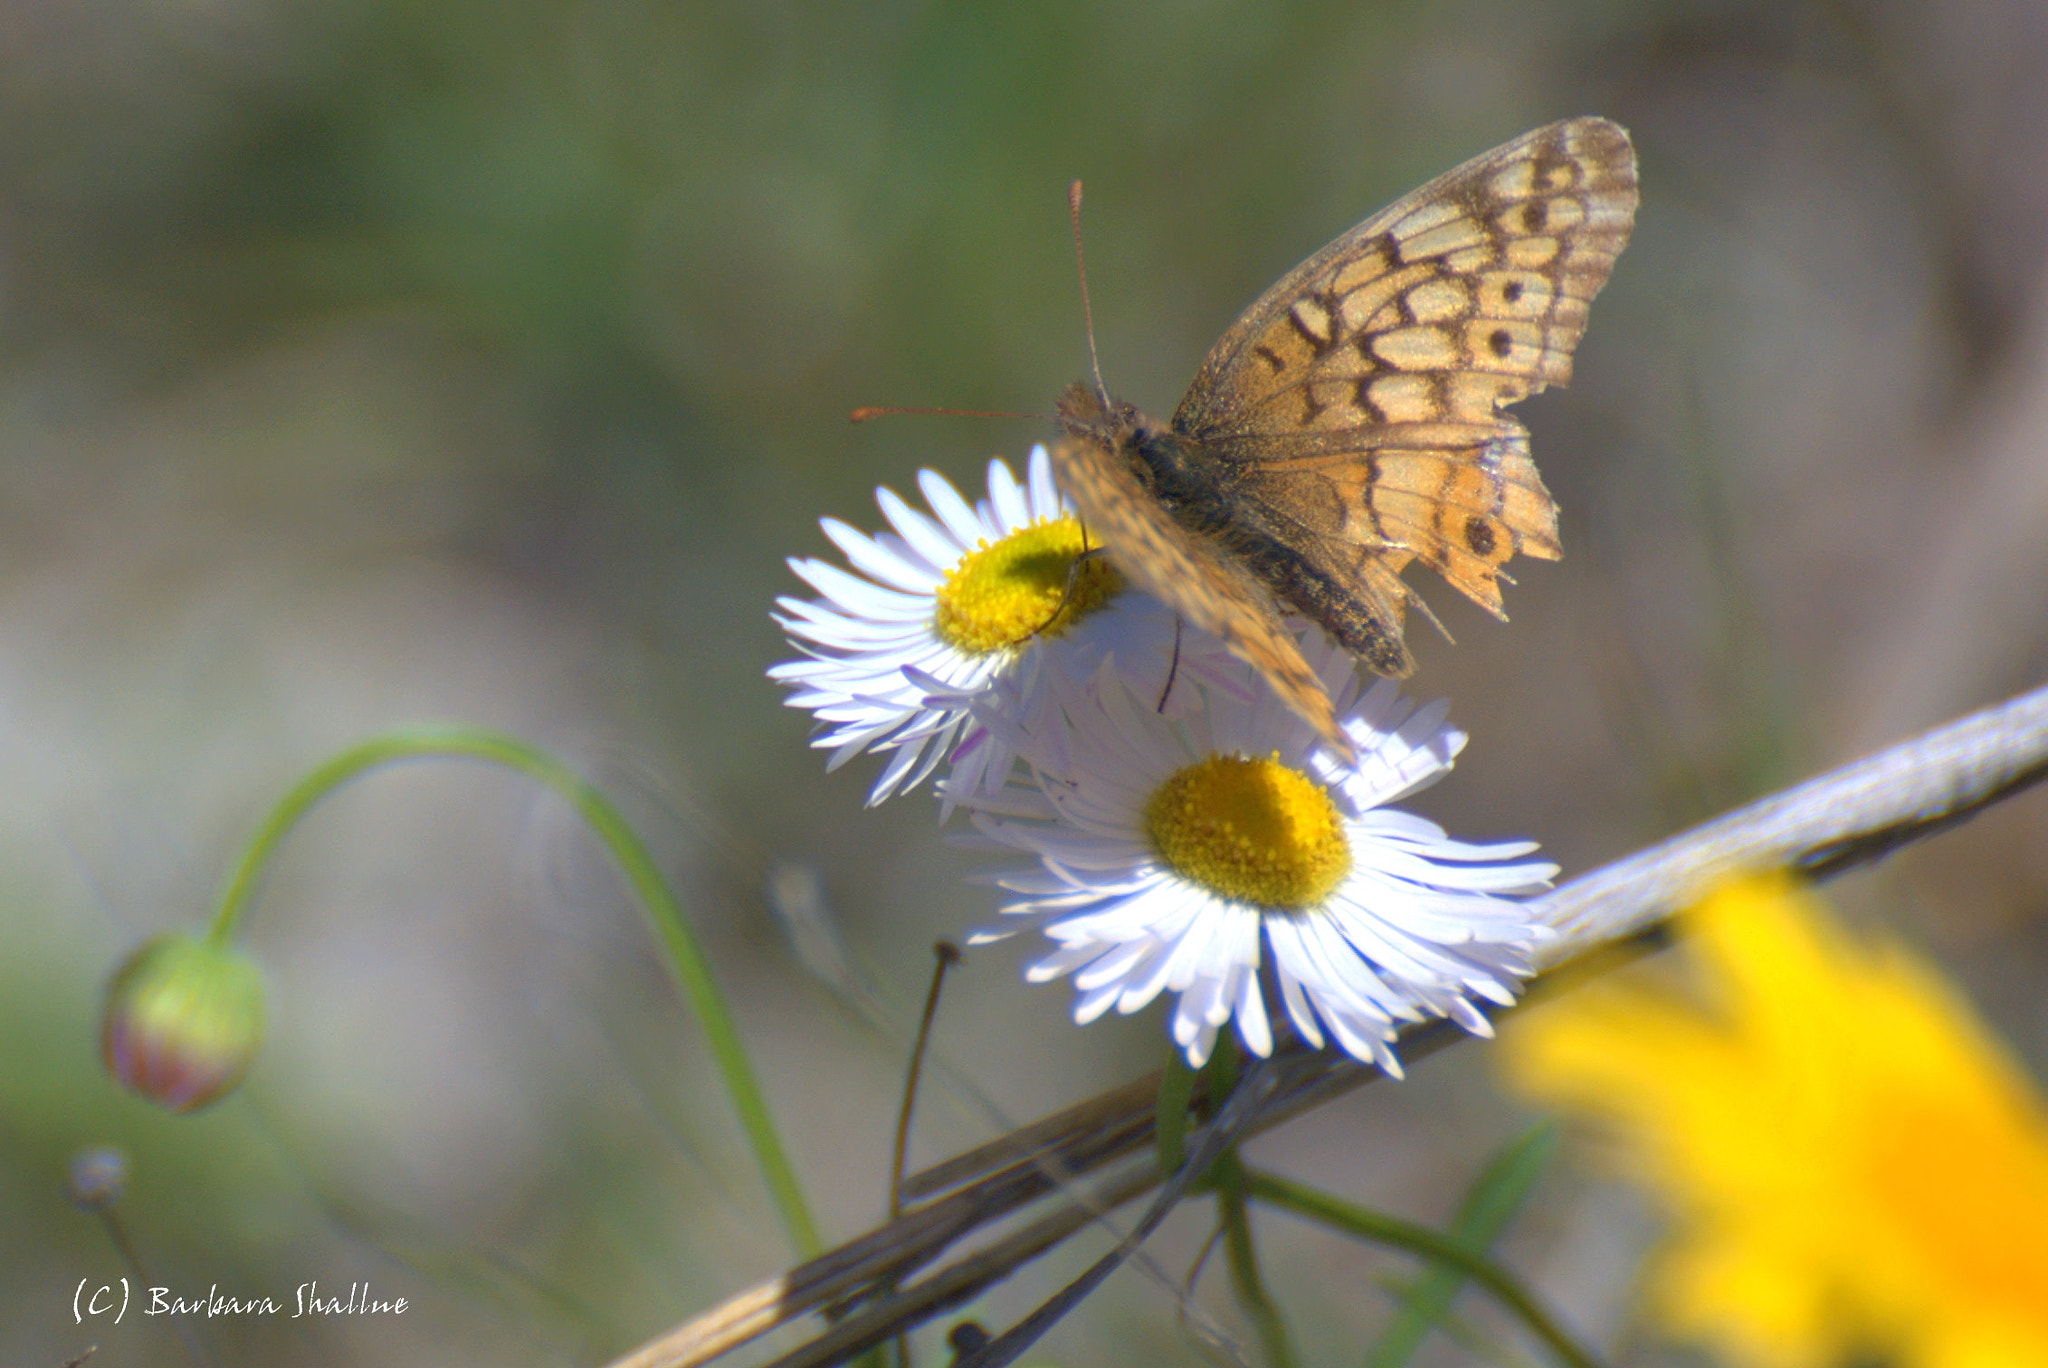 Photograph Spring in Texas by Barbara Shallue on 500px